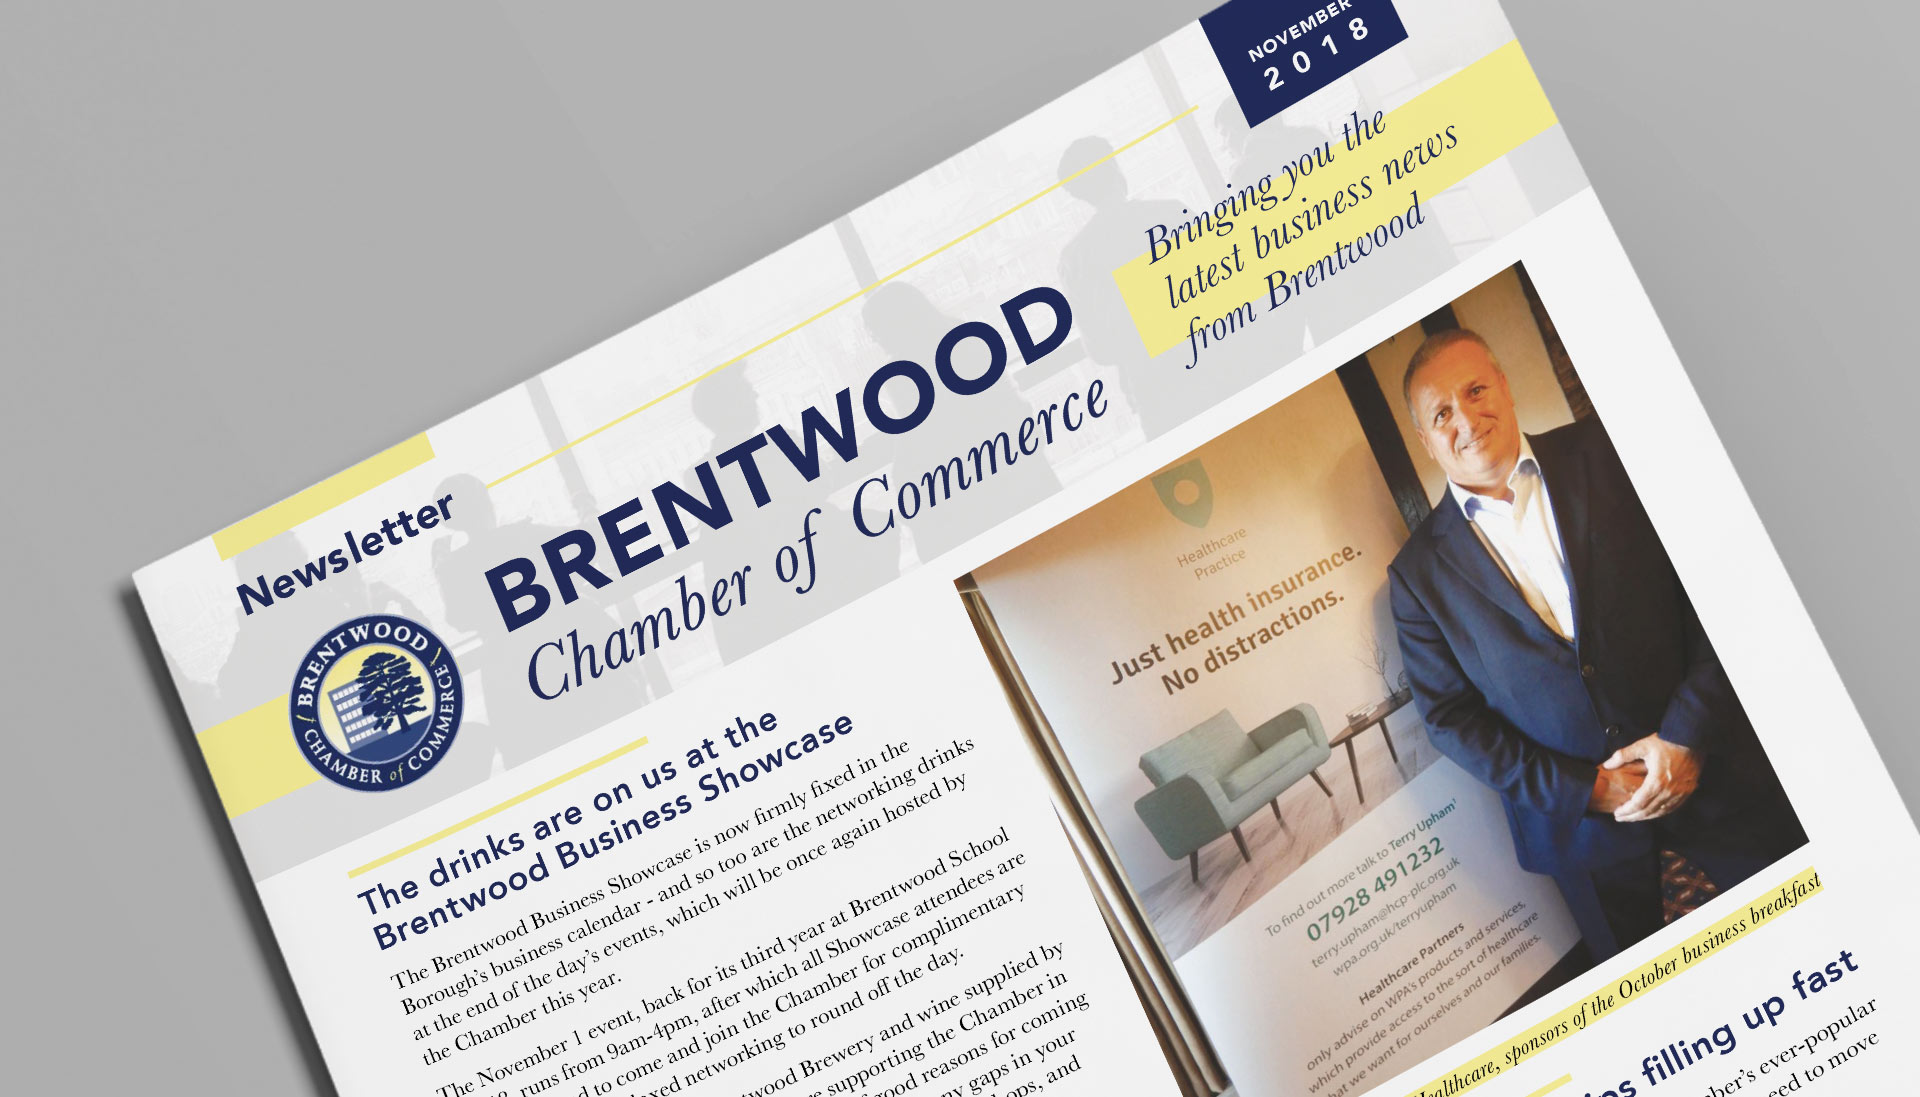 brentwood chamber of commerce graphic design